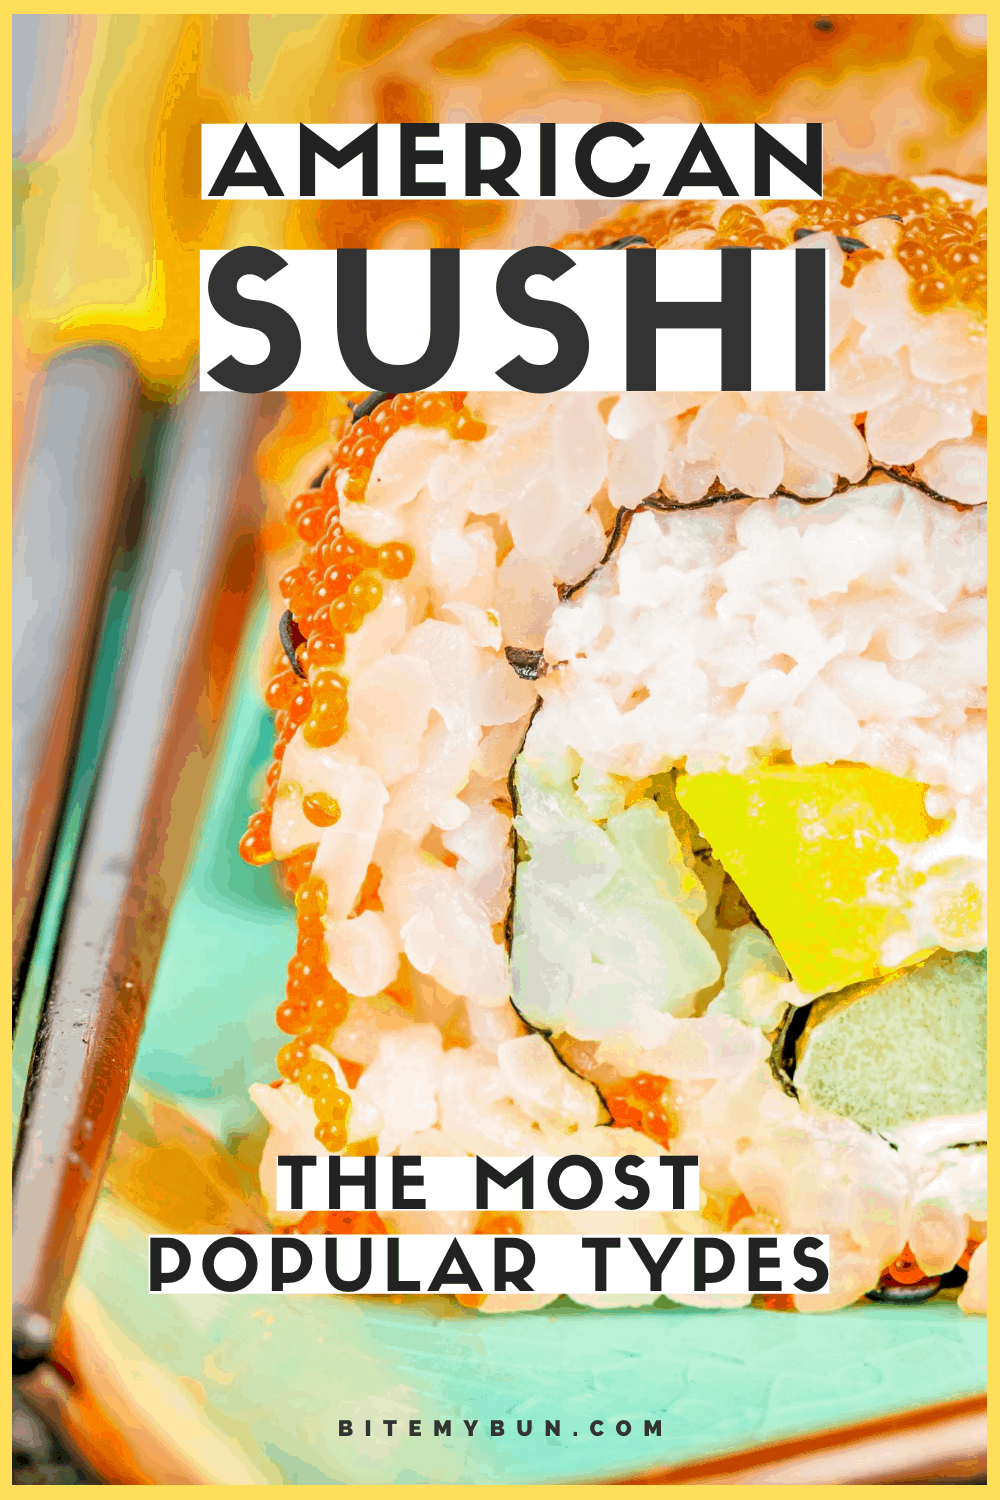 Types of American Sushi